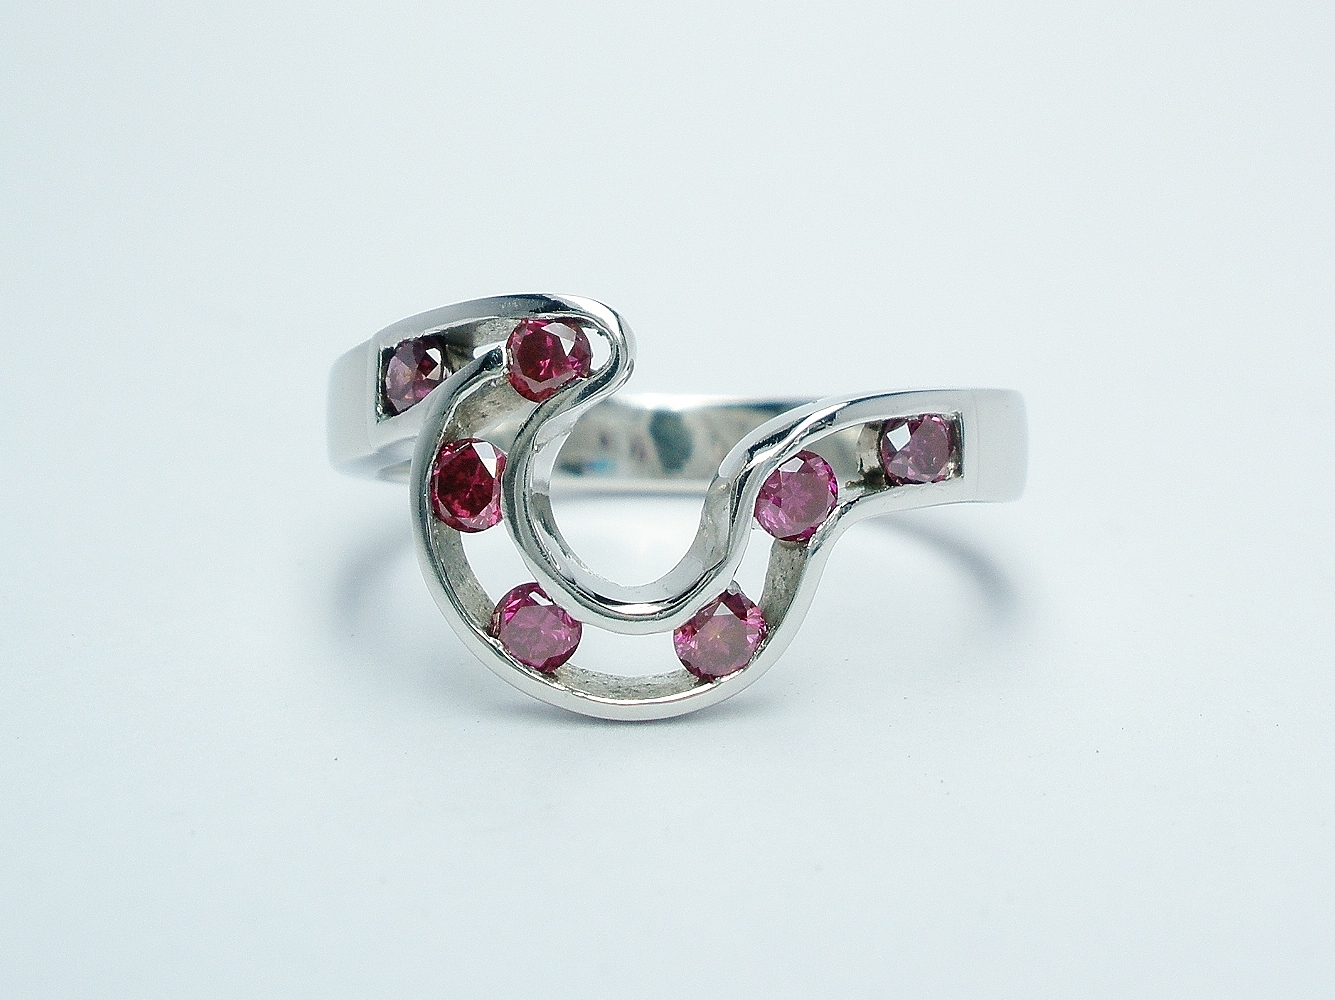 A pink diamond 7 stone open channel set shaped wedding ring shaped to fit around 4 stone comet engagement ring.